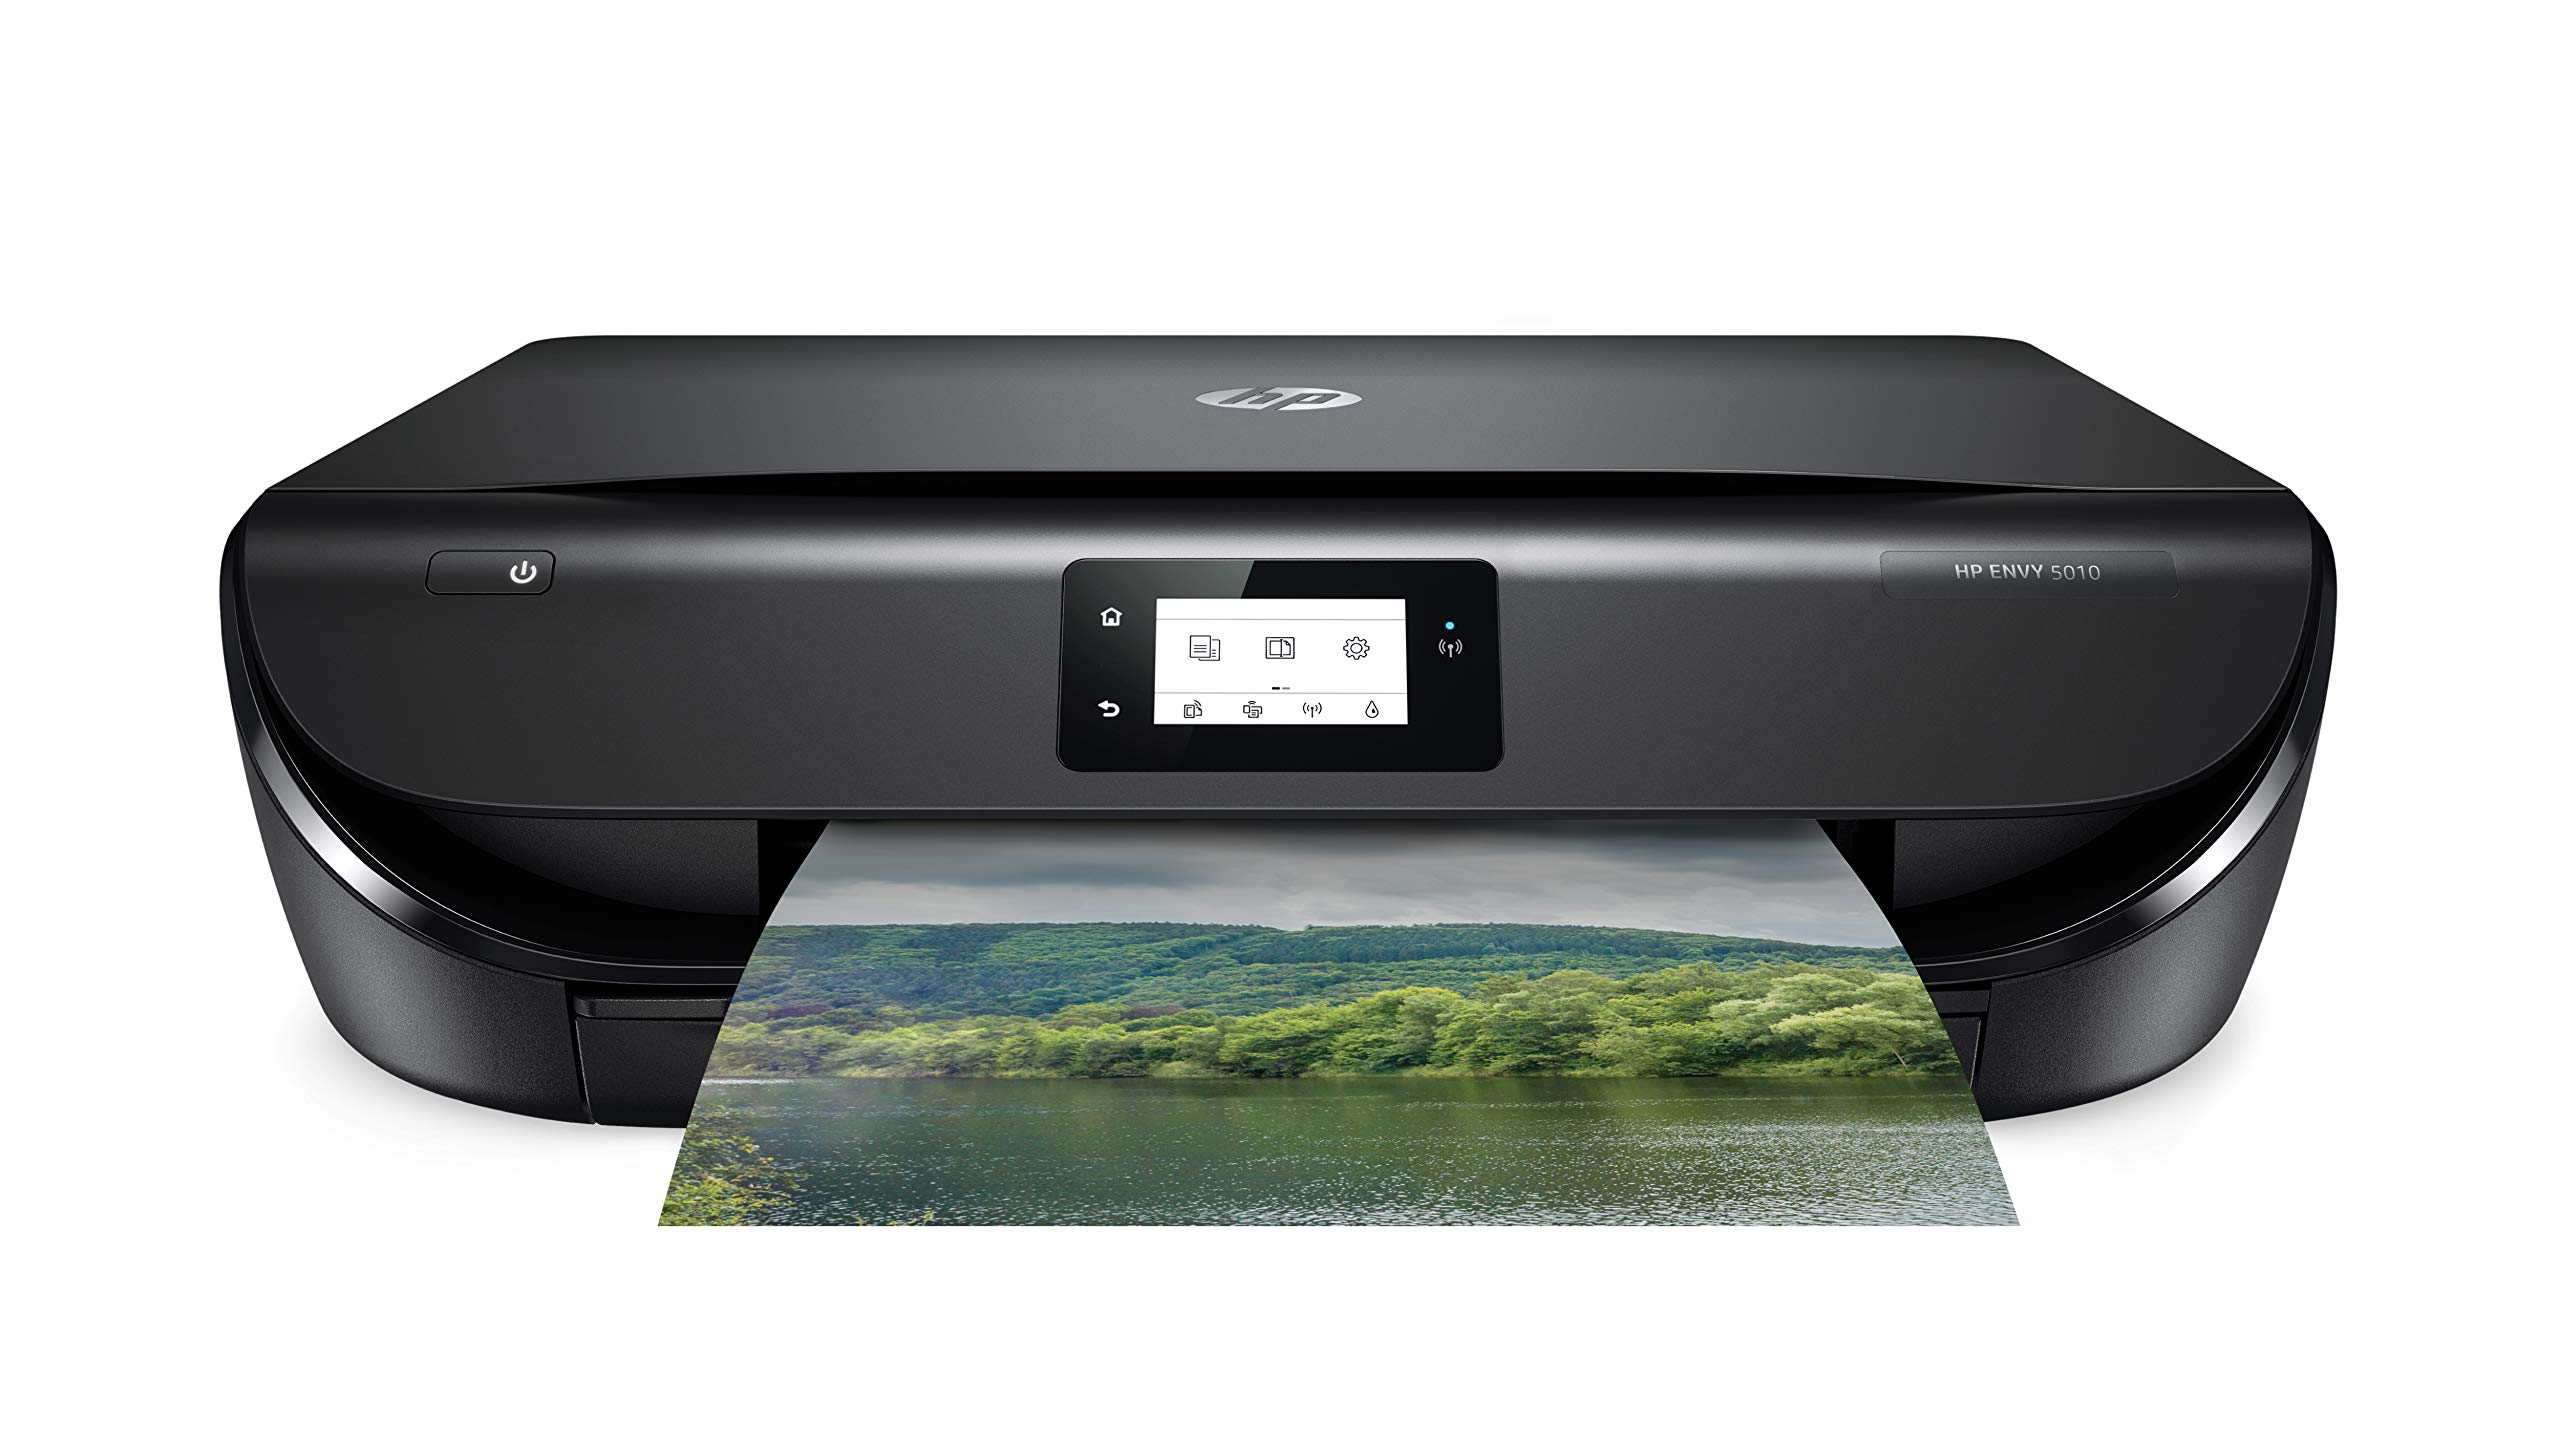 HP Envy 5010 All-in-One Printer, 2 Months of Instant Ink Trial Included